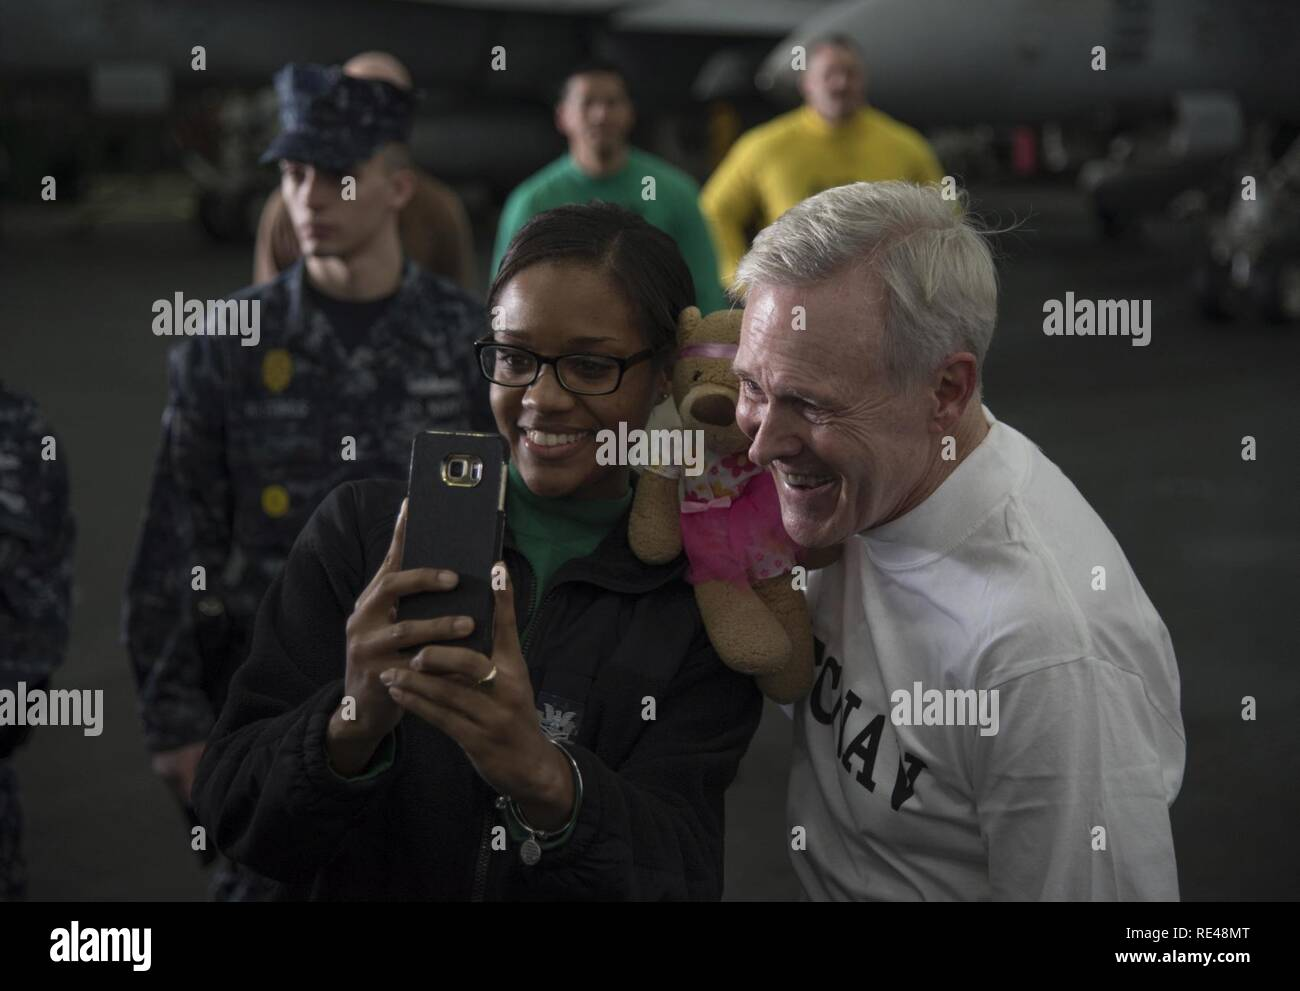 ARABIAN GULF (Nov. 24, 2016) Secretary of the Navy Ray Mabus poses for photos with Sailors during a Thanksgiving Day visit aboard the aircraft carrier USS Dwight D. Eisenhower (CVN 69) (Ike). Ike's culinary specialists prepared more than 4,950 pounds of turkey, 1,050 pounds of ham, 1,200 pounds of beef tenderloin, 648 pounds of shrimp cocktail, 7,000 portions of mashed potatoes, 400 pies and 200 cheesecakes for the ship's Thanksgiving meal. Ike and its carrier strike group are deployed in support of Operation Inherent Resolve, maritime security operations and theater security cooperation effor - Stock Image